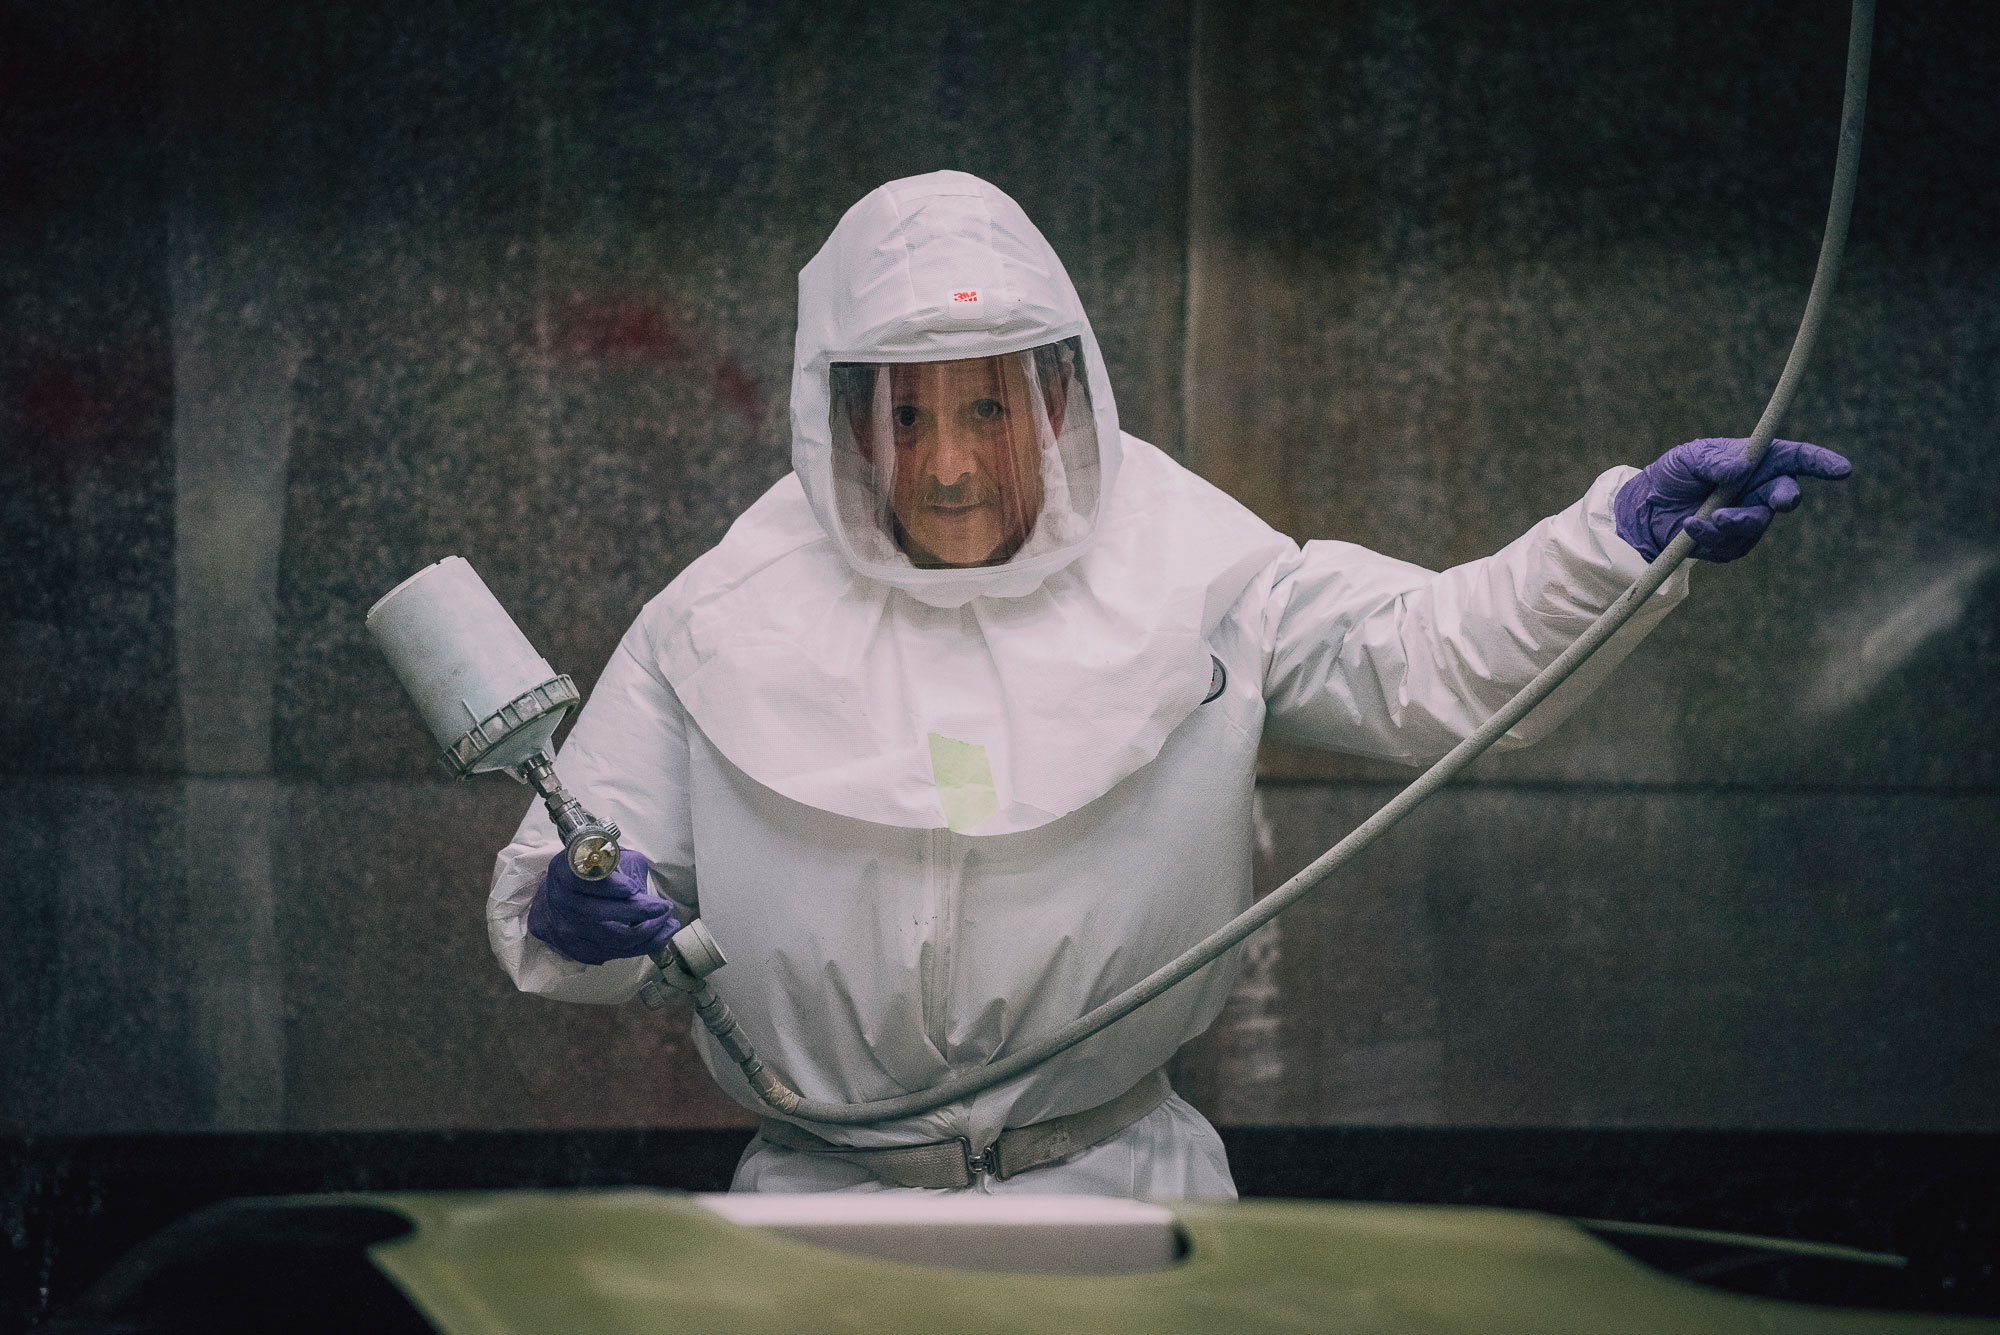 Man in hazmat suit holds a maintenance tool.